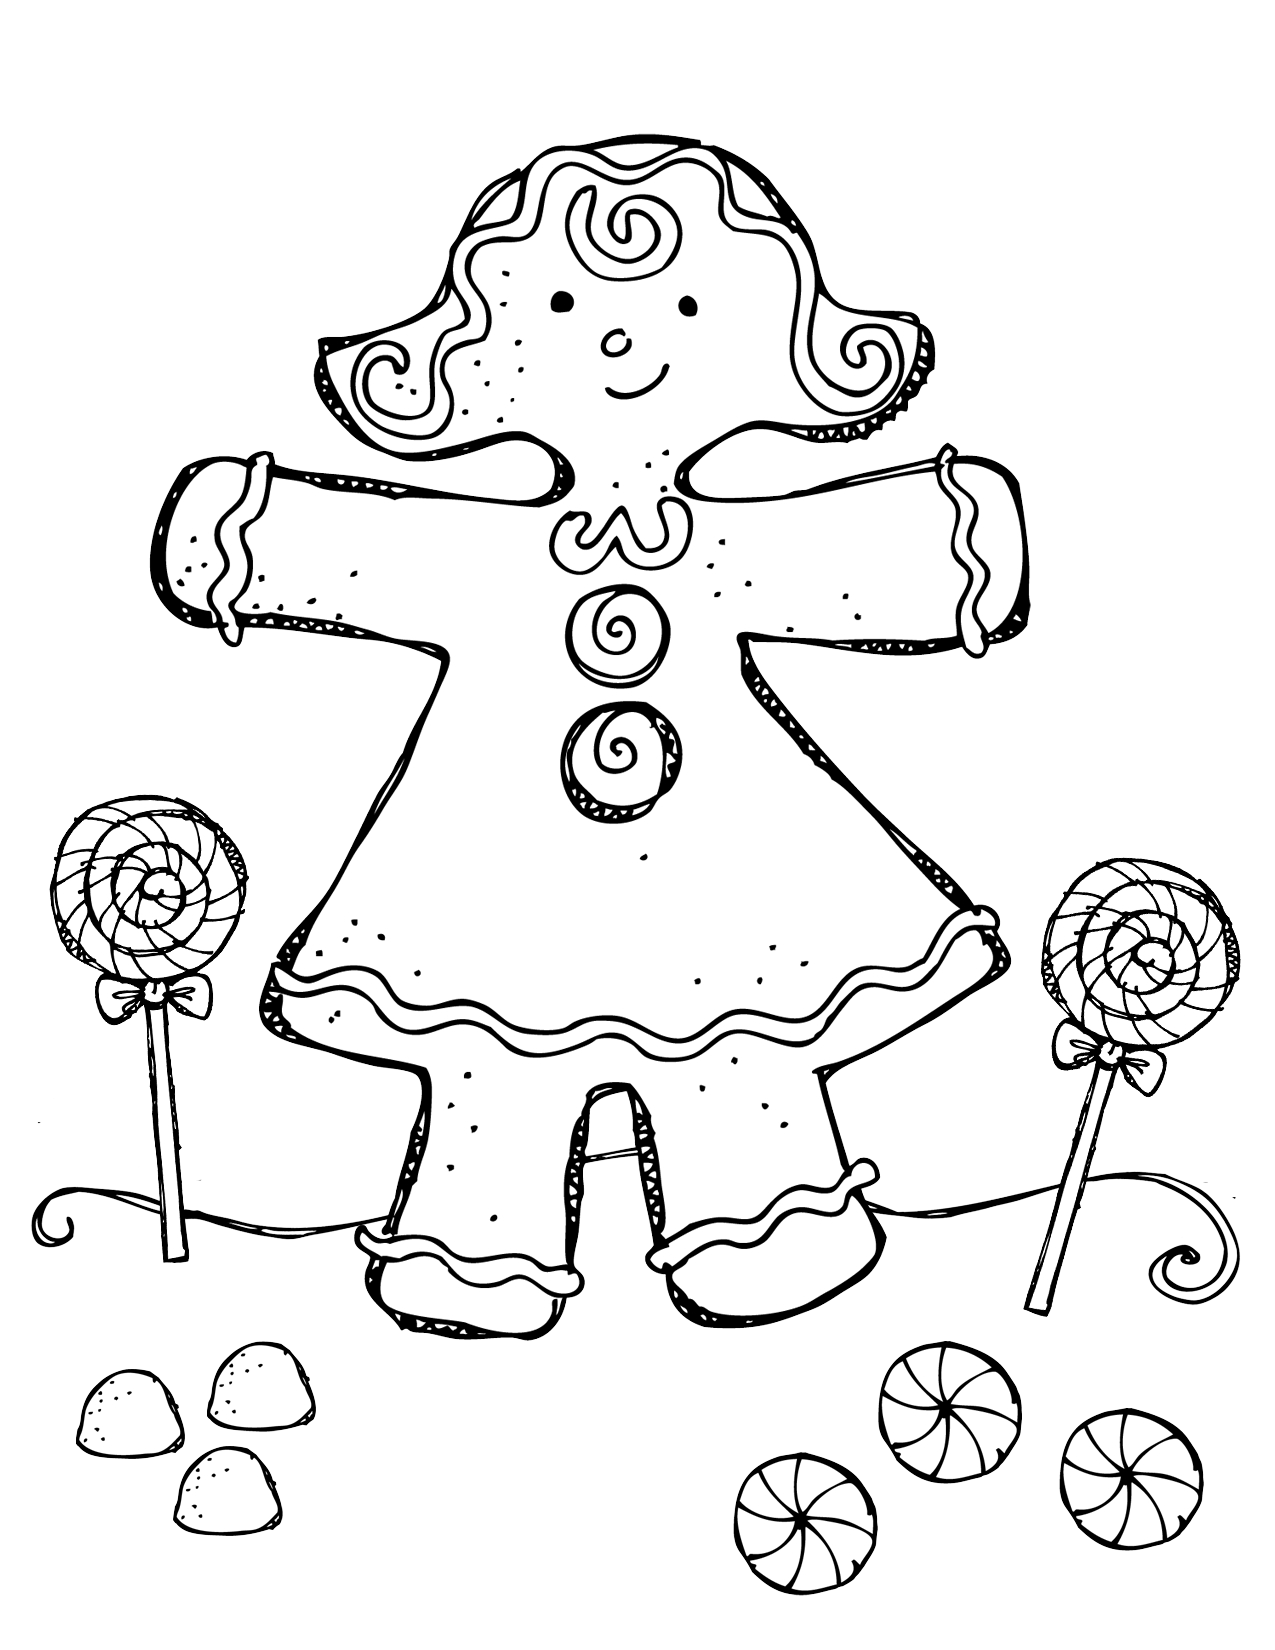 Christmas Gingerbread Boy Coloring Pages Sketch Coloring Page